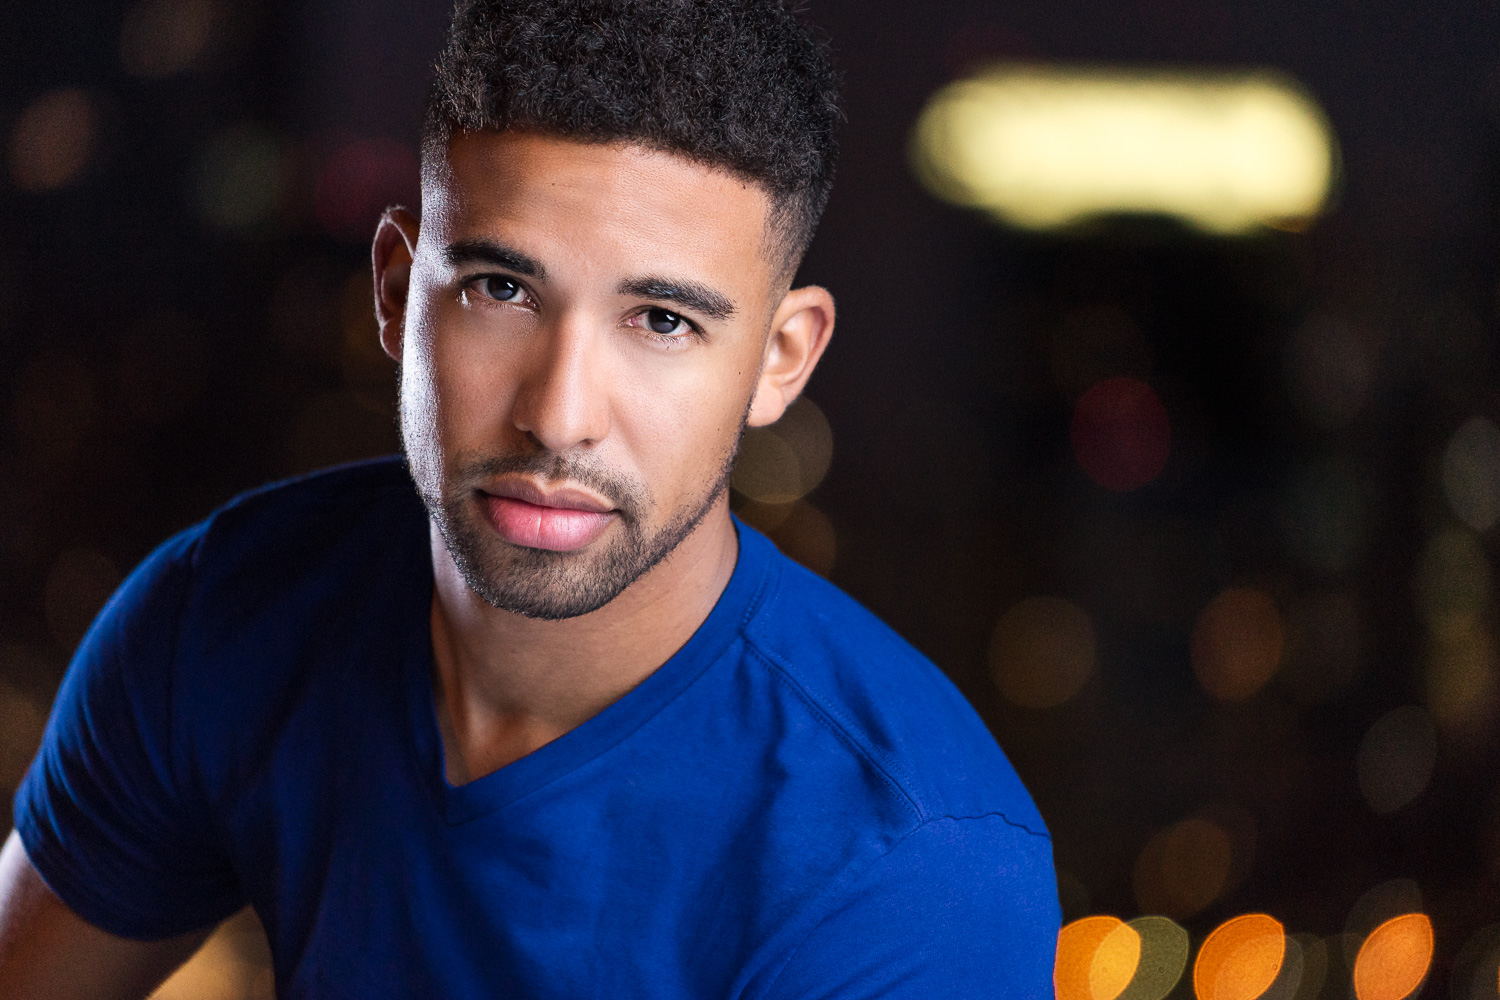 Male Cinematic Headshots by South Florida Photographer Humberto Garcia on Sony A7II and Sony 85mm F1.4 G Master.jpg.jpg